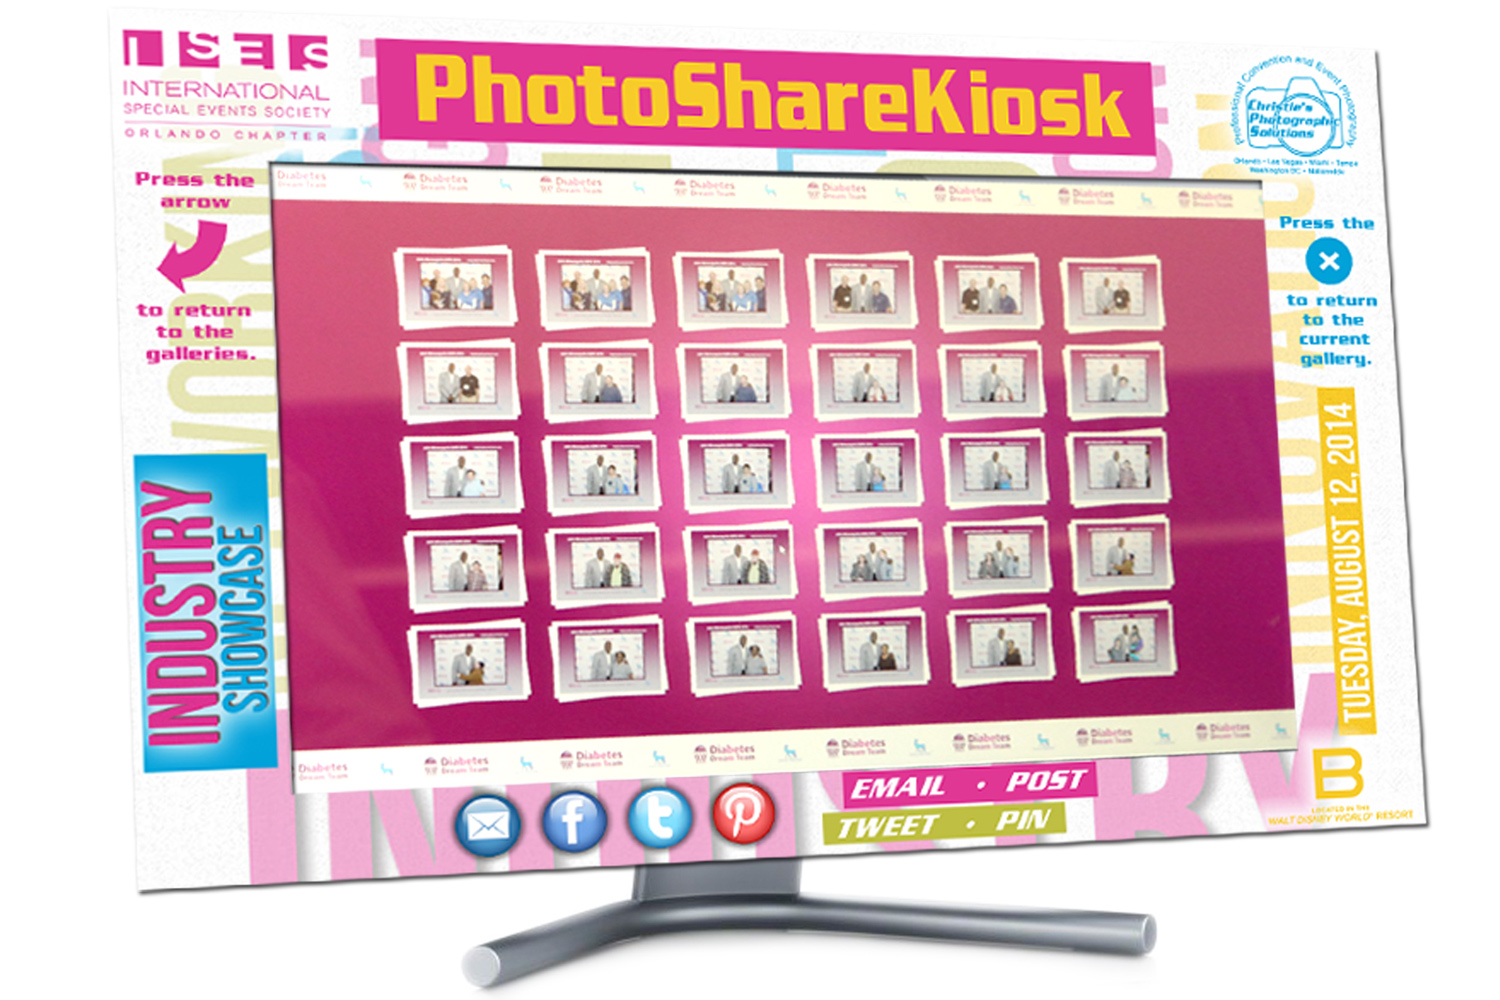 PhotoShare Kiosks Combined With Professional Event Photography